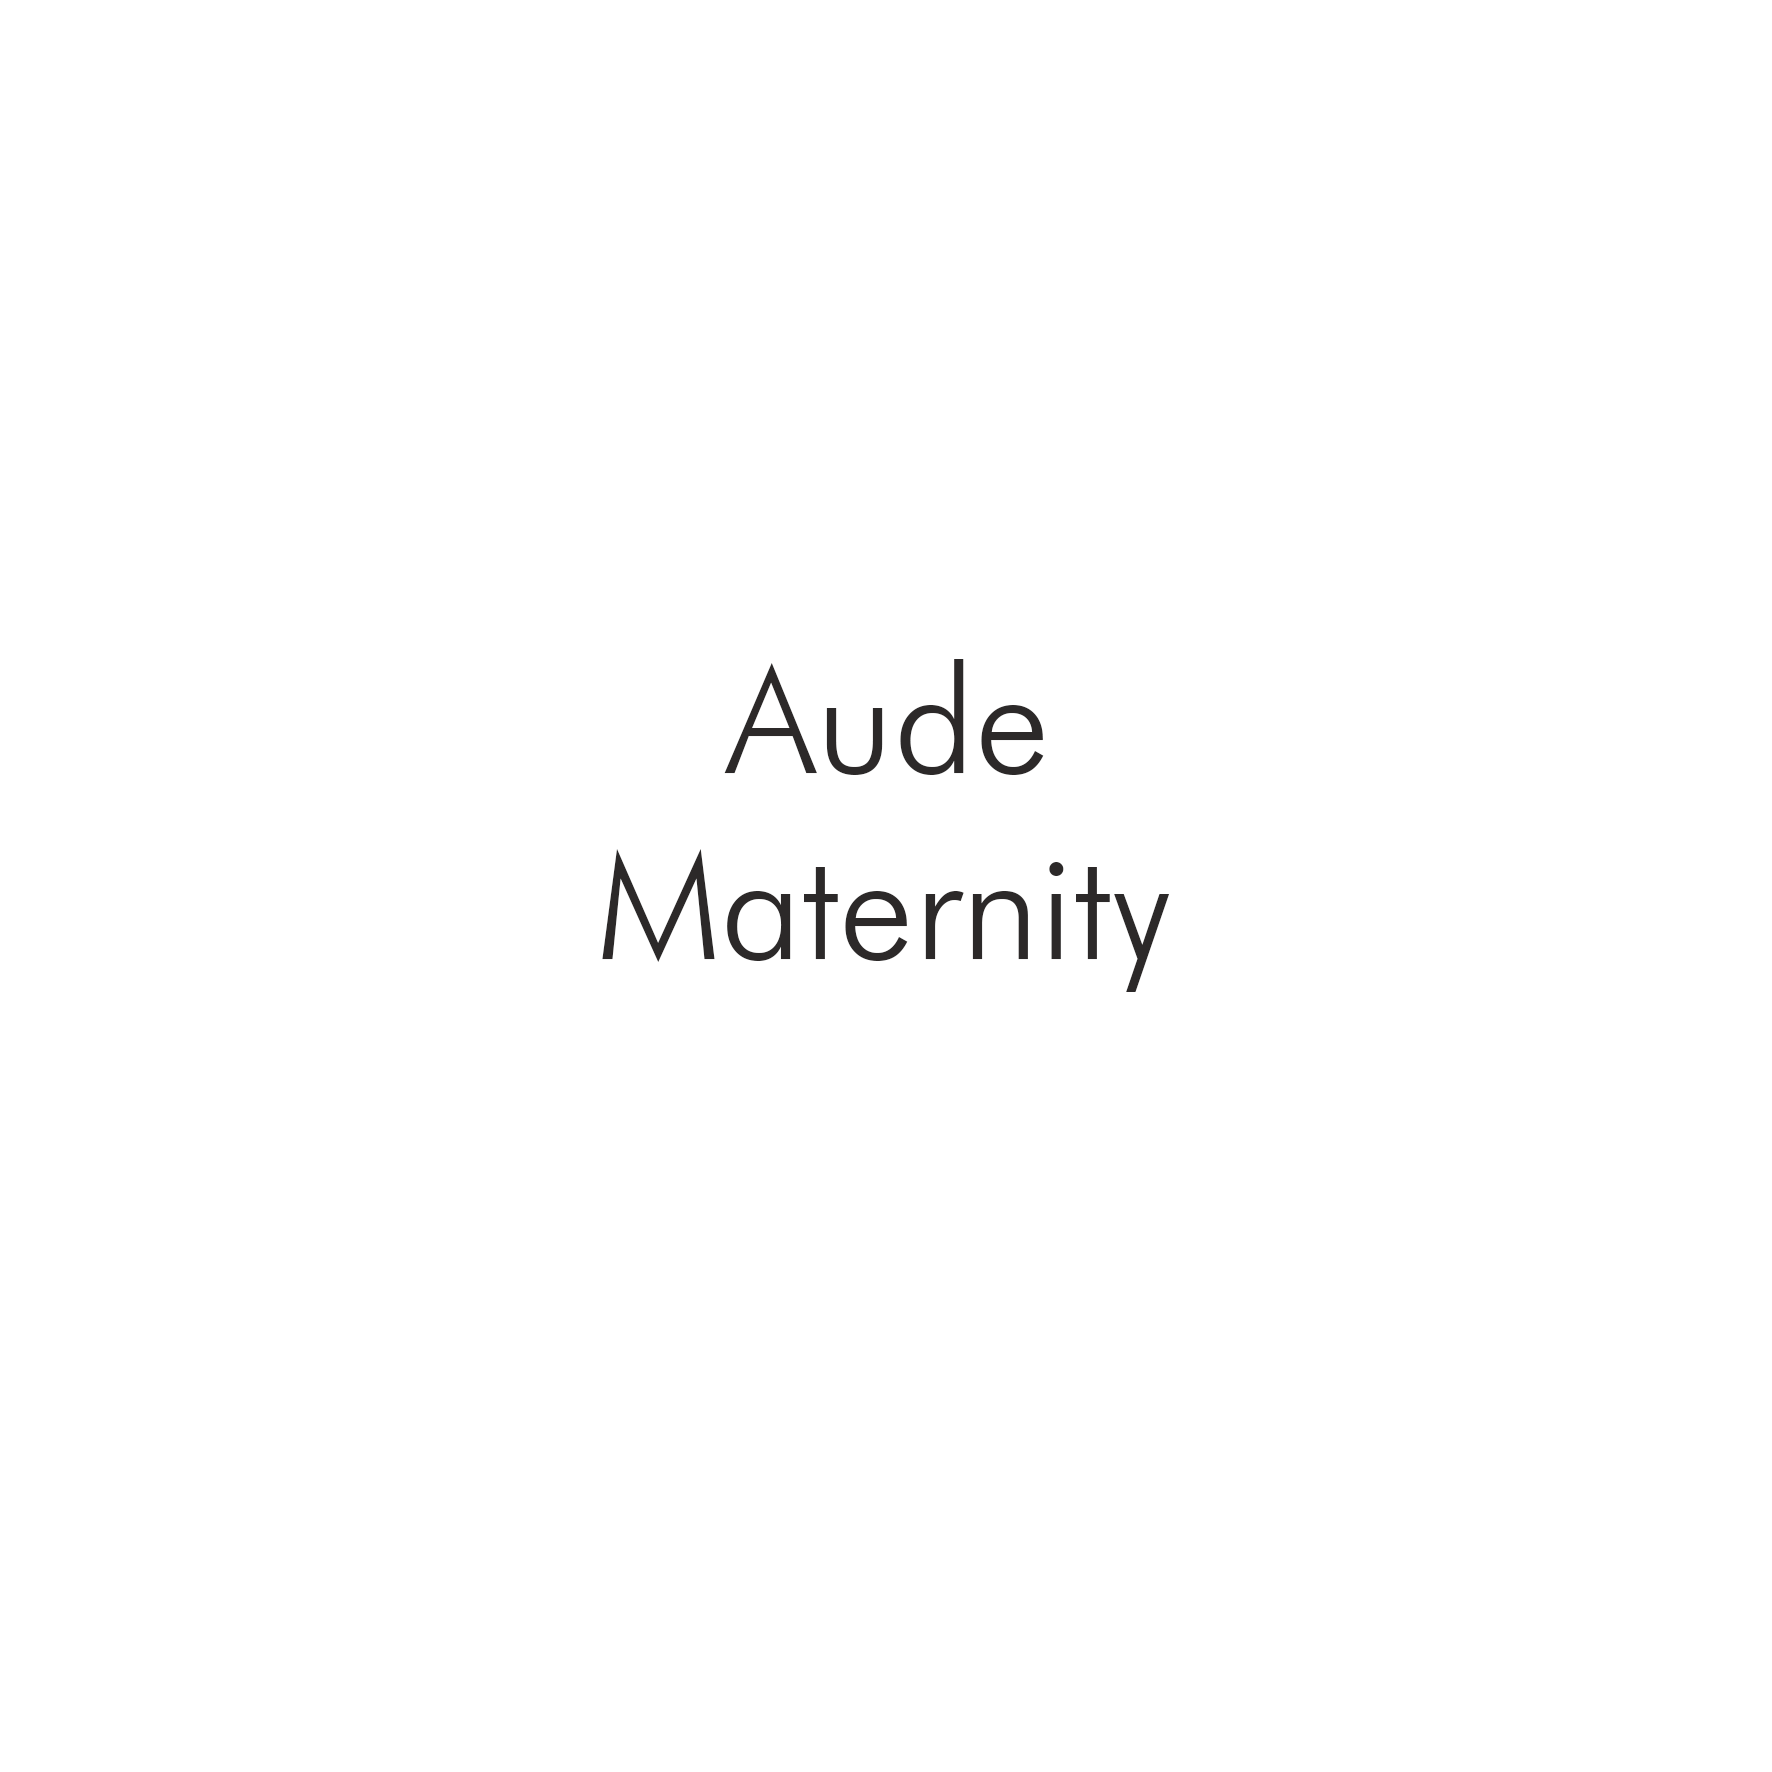 Aude Maternity.png